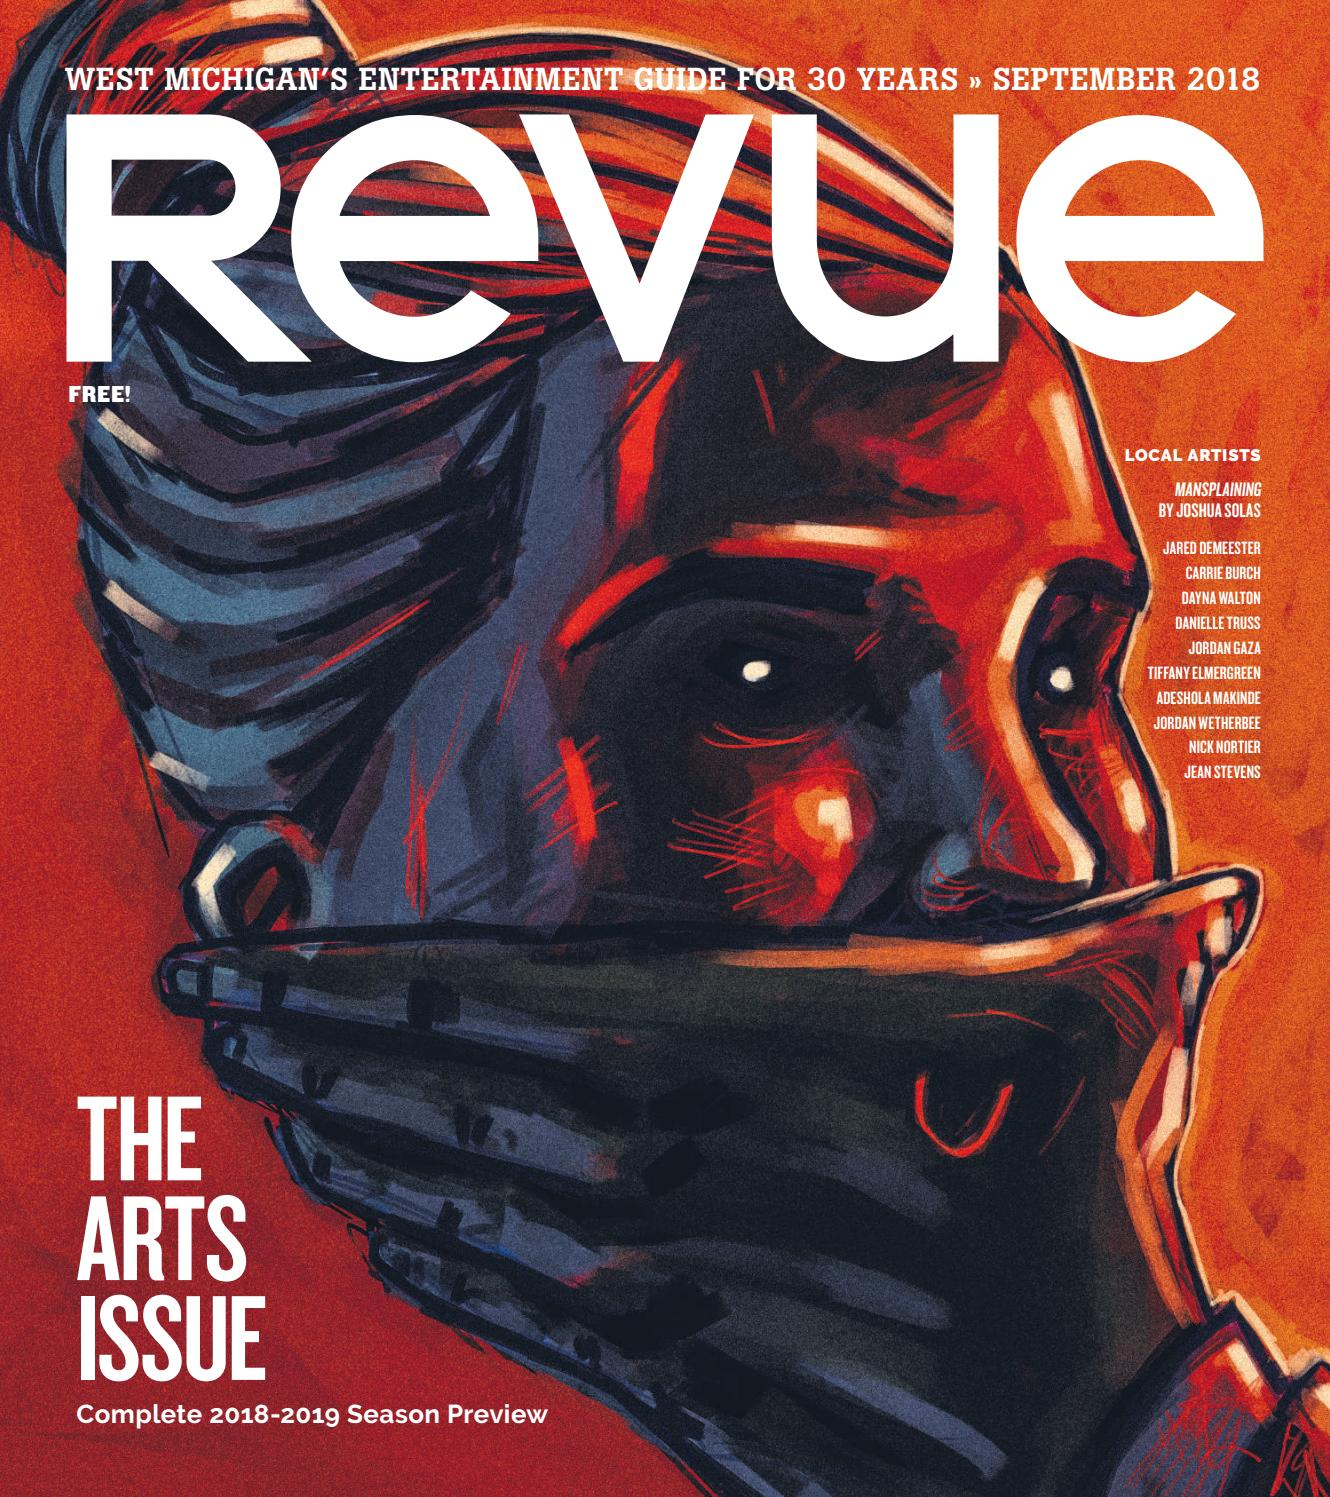 Revue magazine september 2018 by revue magazine issuu fandeluxe Choice Image